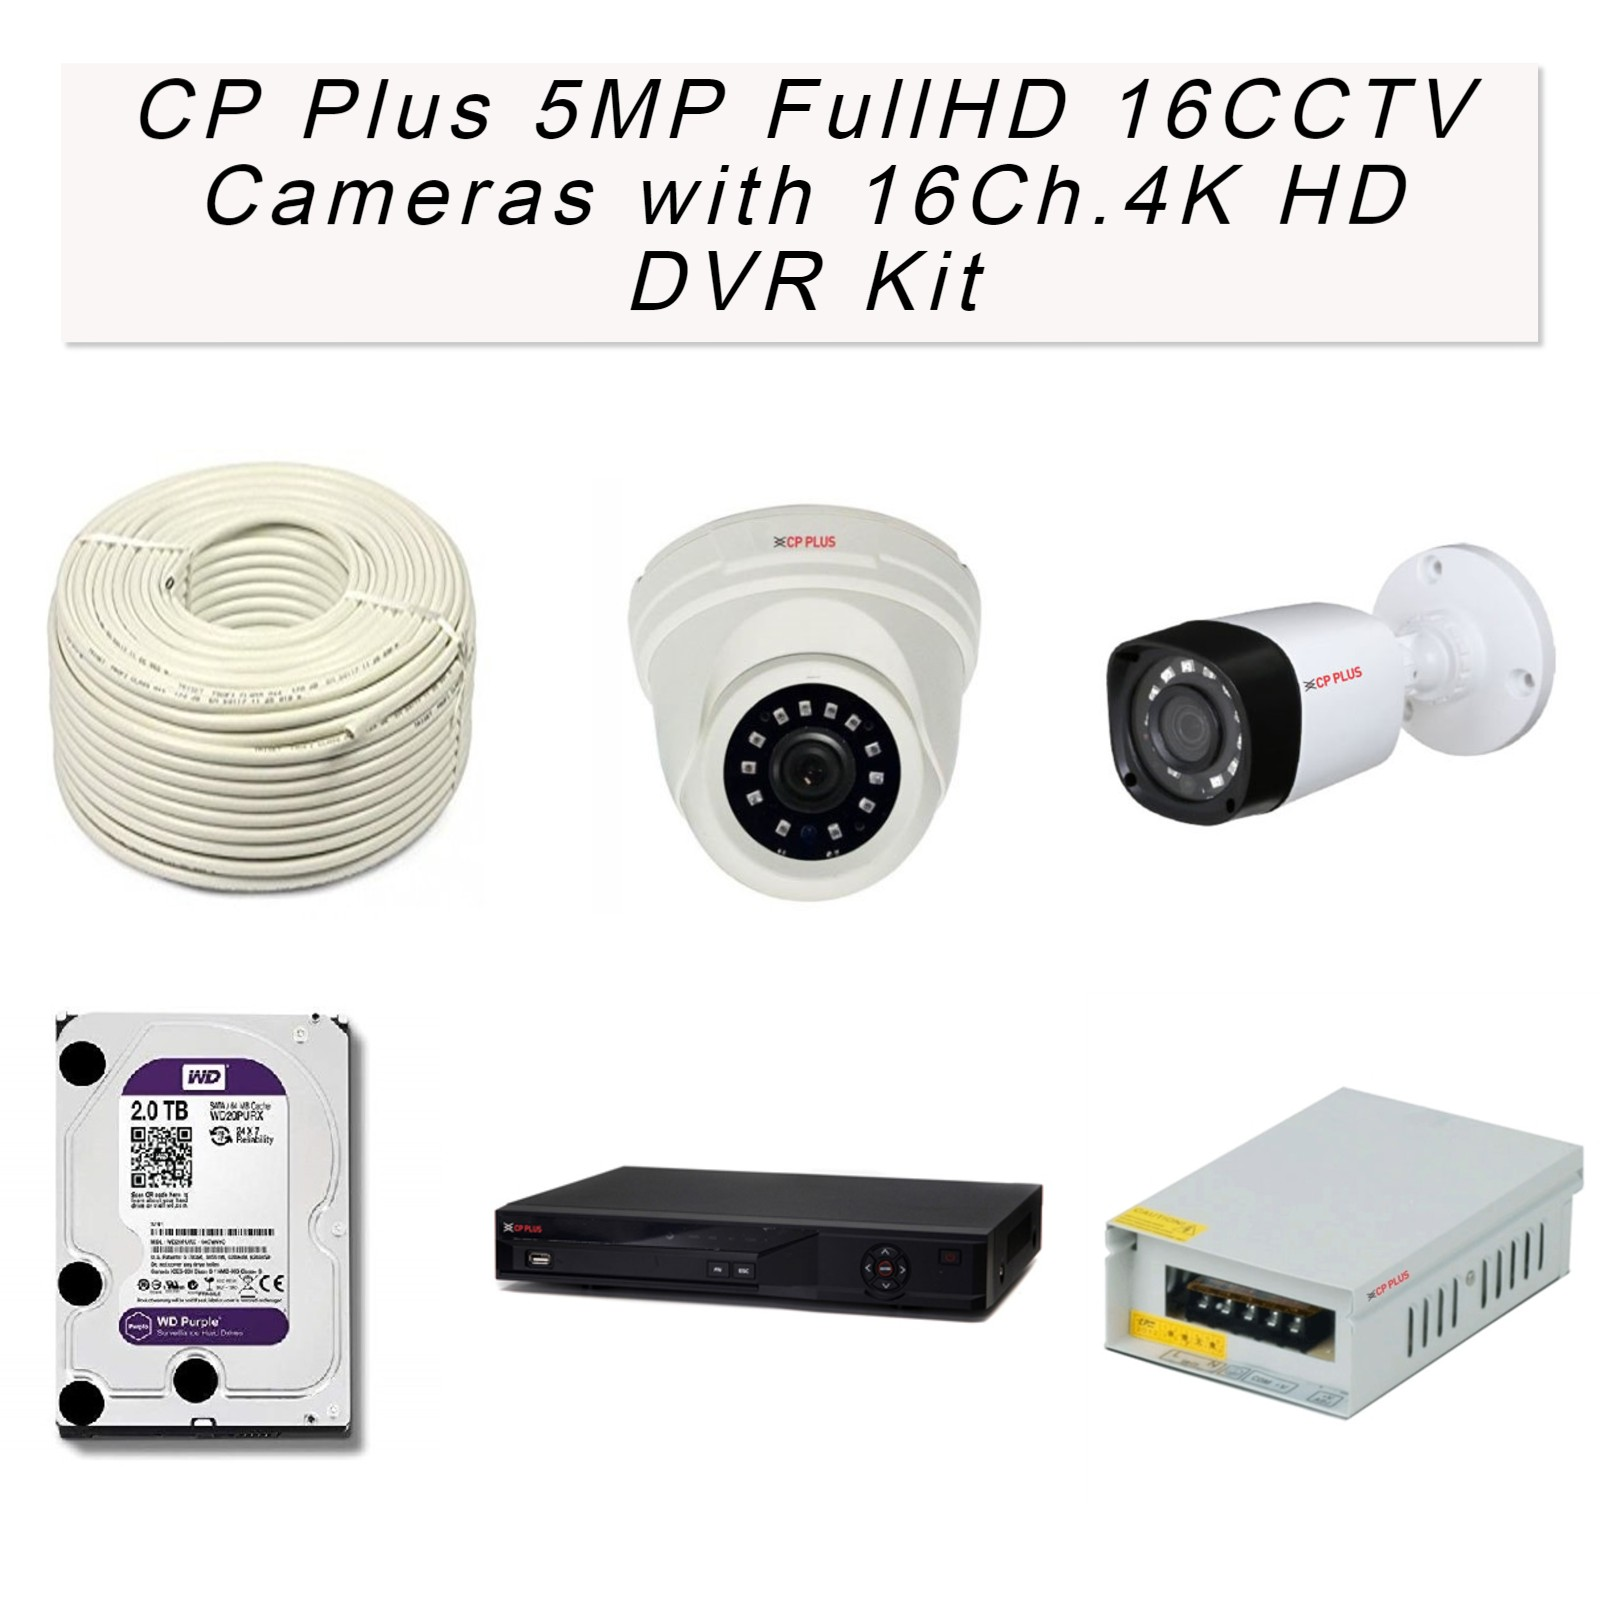 CP Plus 5MP FullHD 16 CCTV Cameras with 16Ch. 4K HD DVR Kit